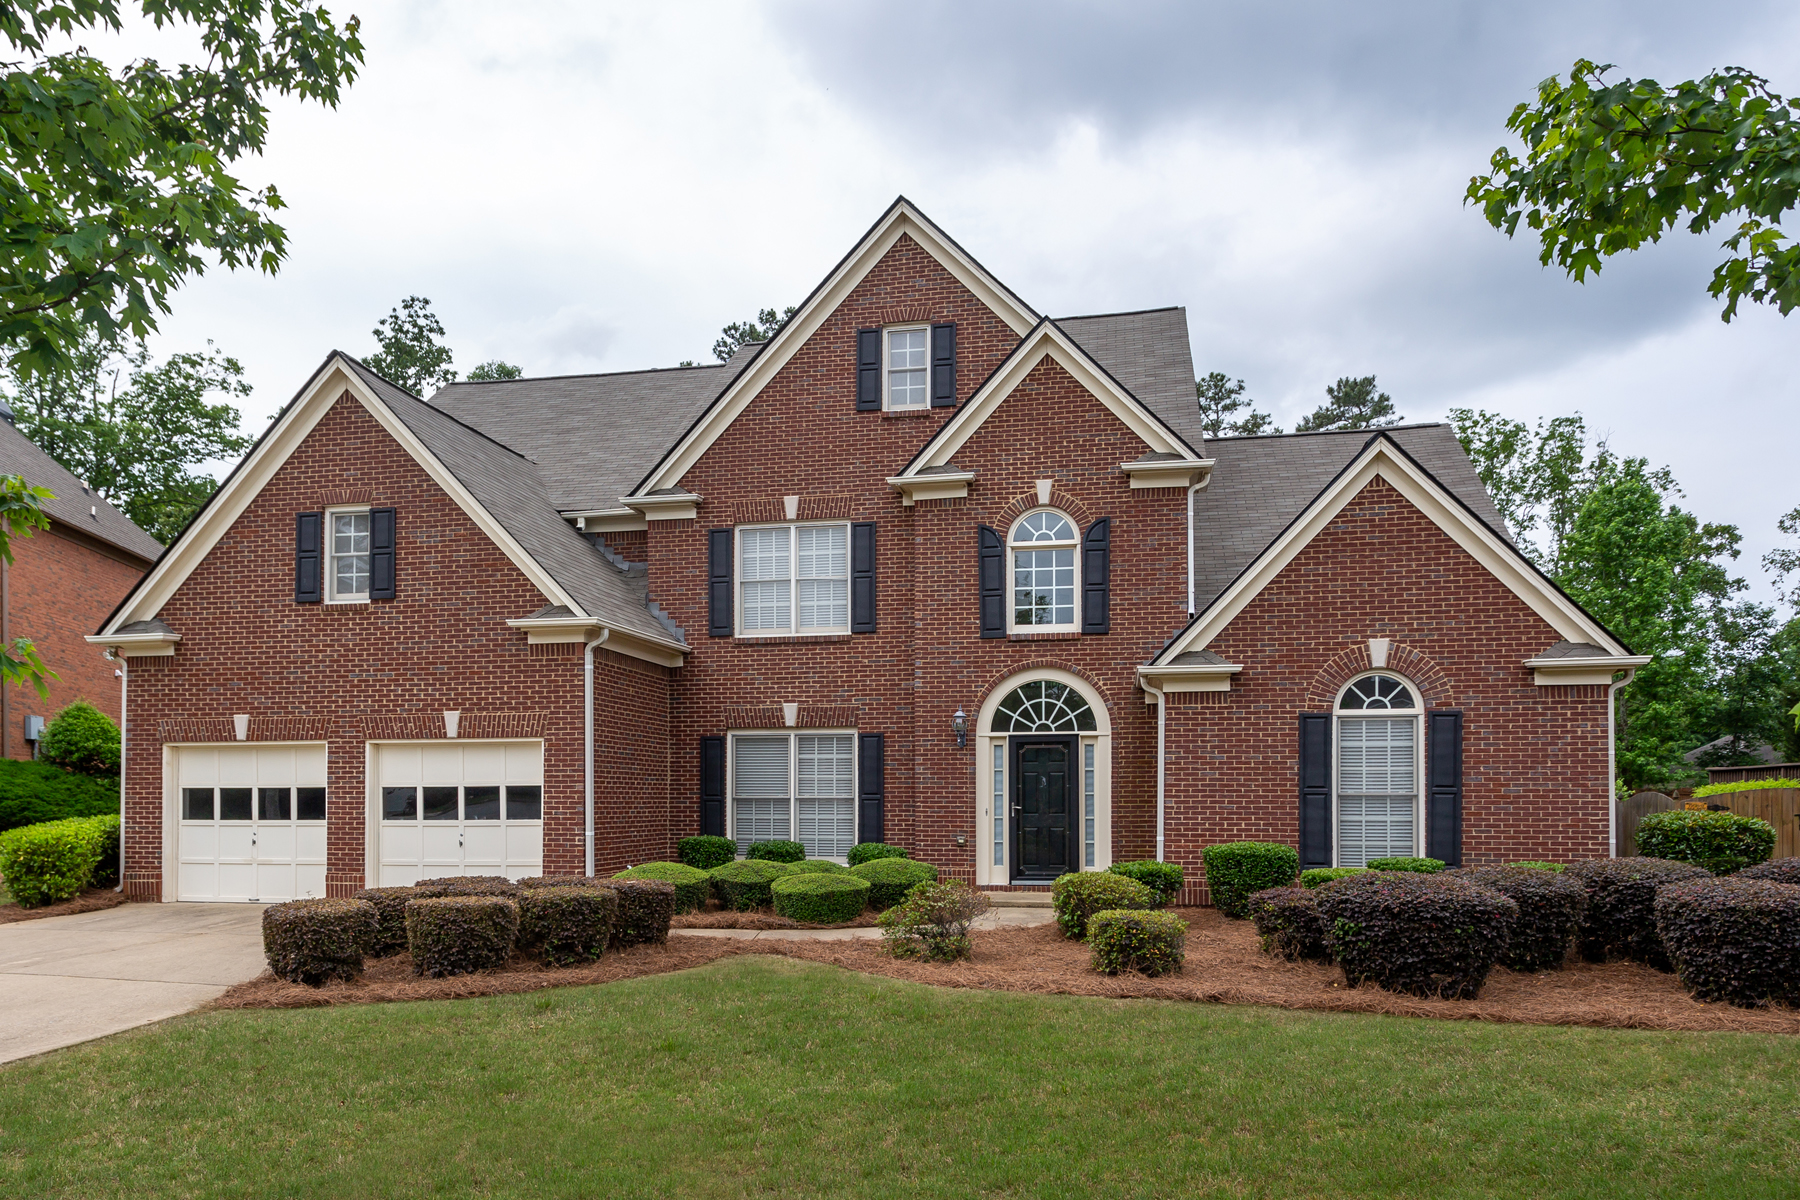 Single Family Home for Sale at Lovely Executive Home In Top East Cobb Schools With Swim/Tennis Community 3362 Keenland Road Marietta, Georgia 30062 United States